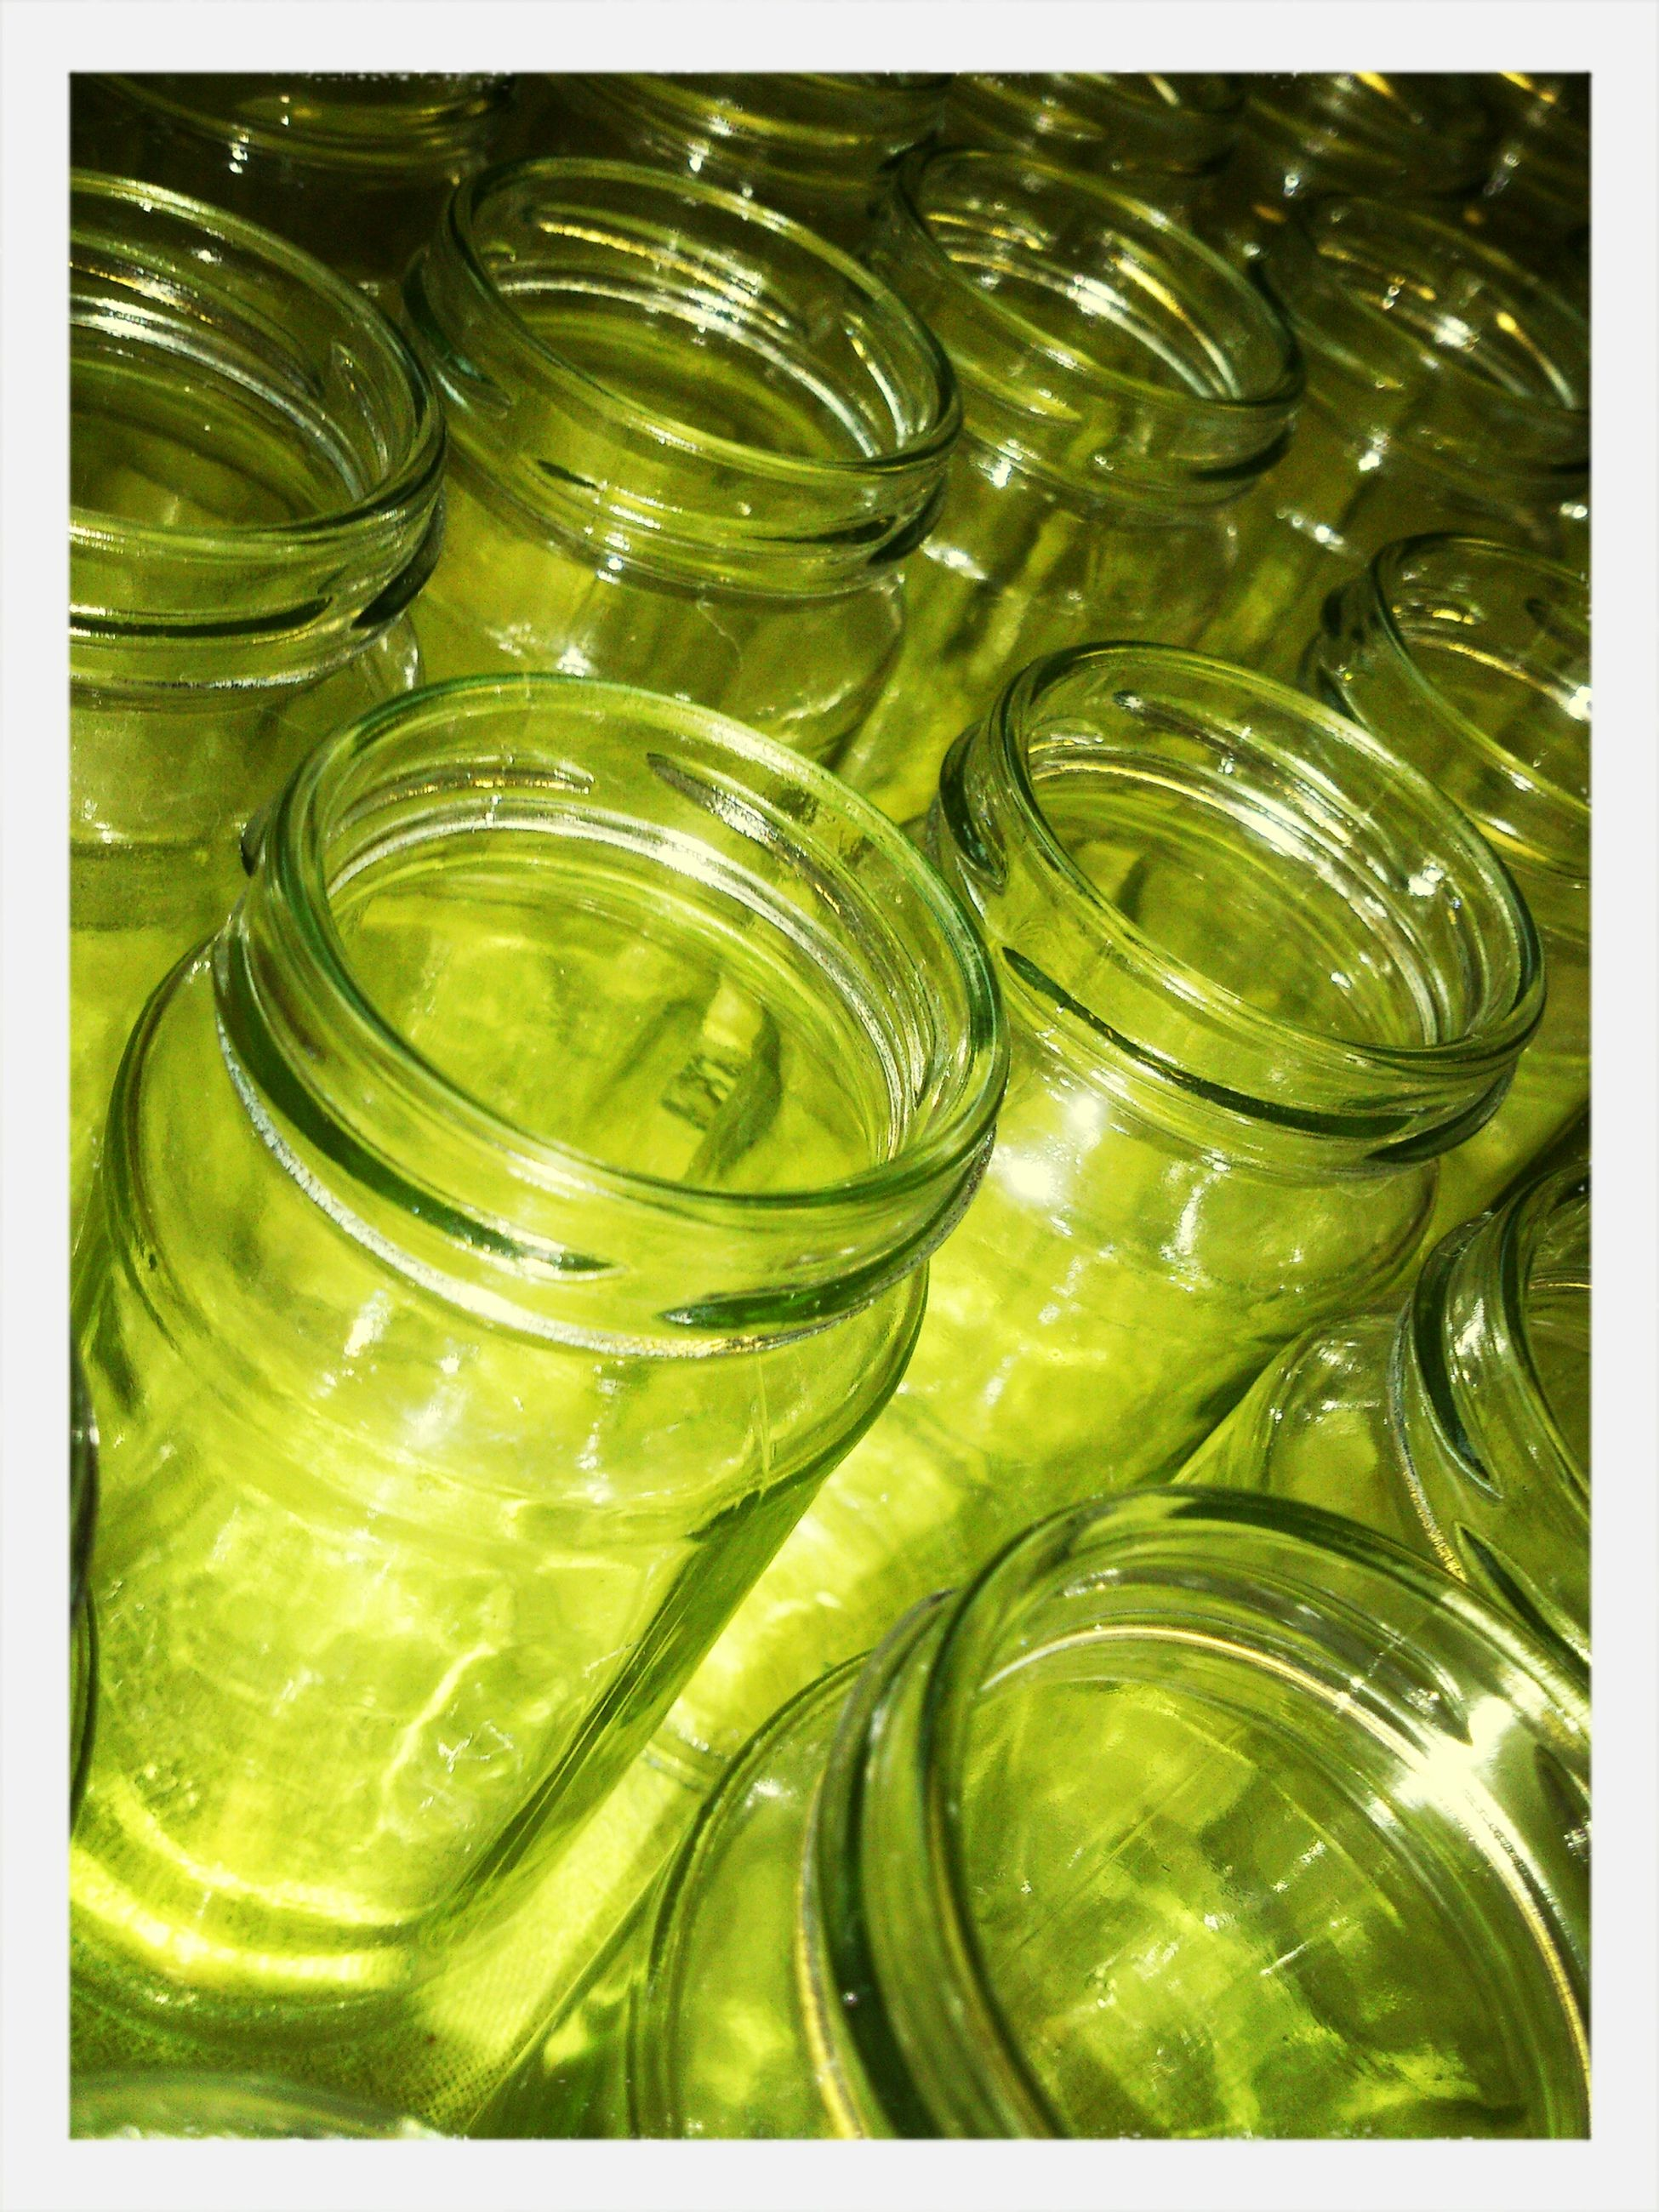 indoors, glass - material, drinking glass, transparent, transfer print, still life, close-up, food and drink, drink, freshness, refreshment, full frame, backgrounds, auto post production filter, glass, large group of objects, bottle, water, jar, abundance